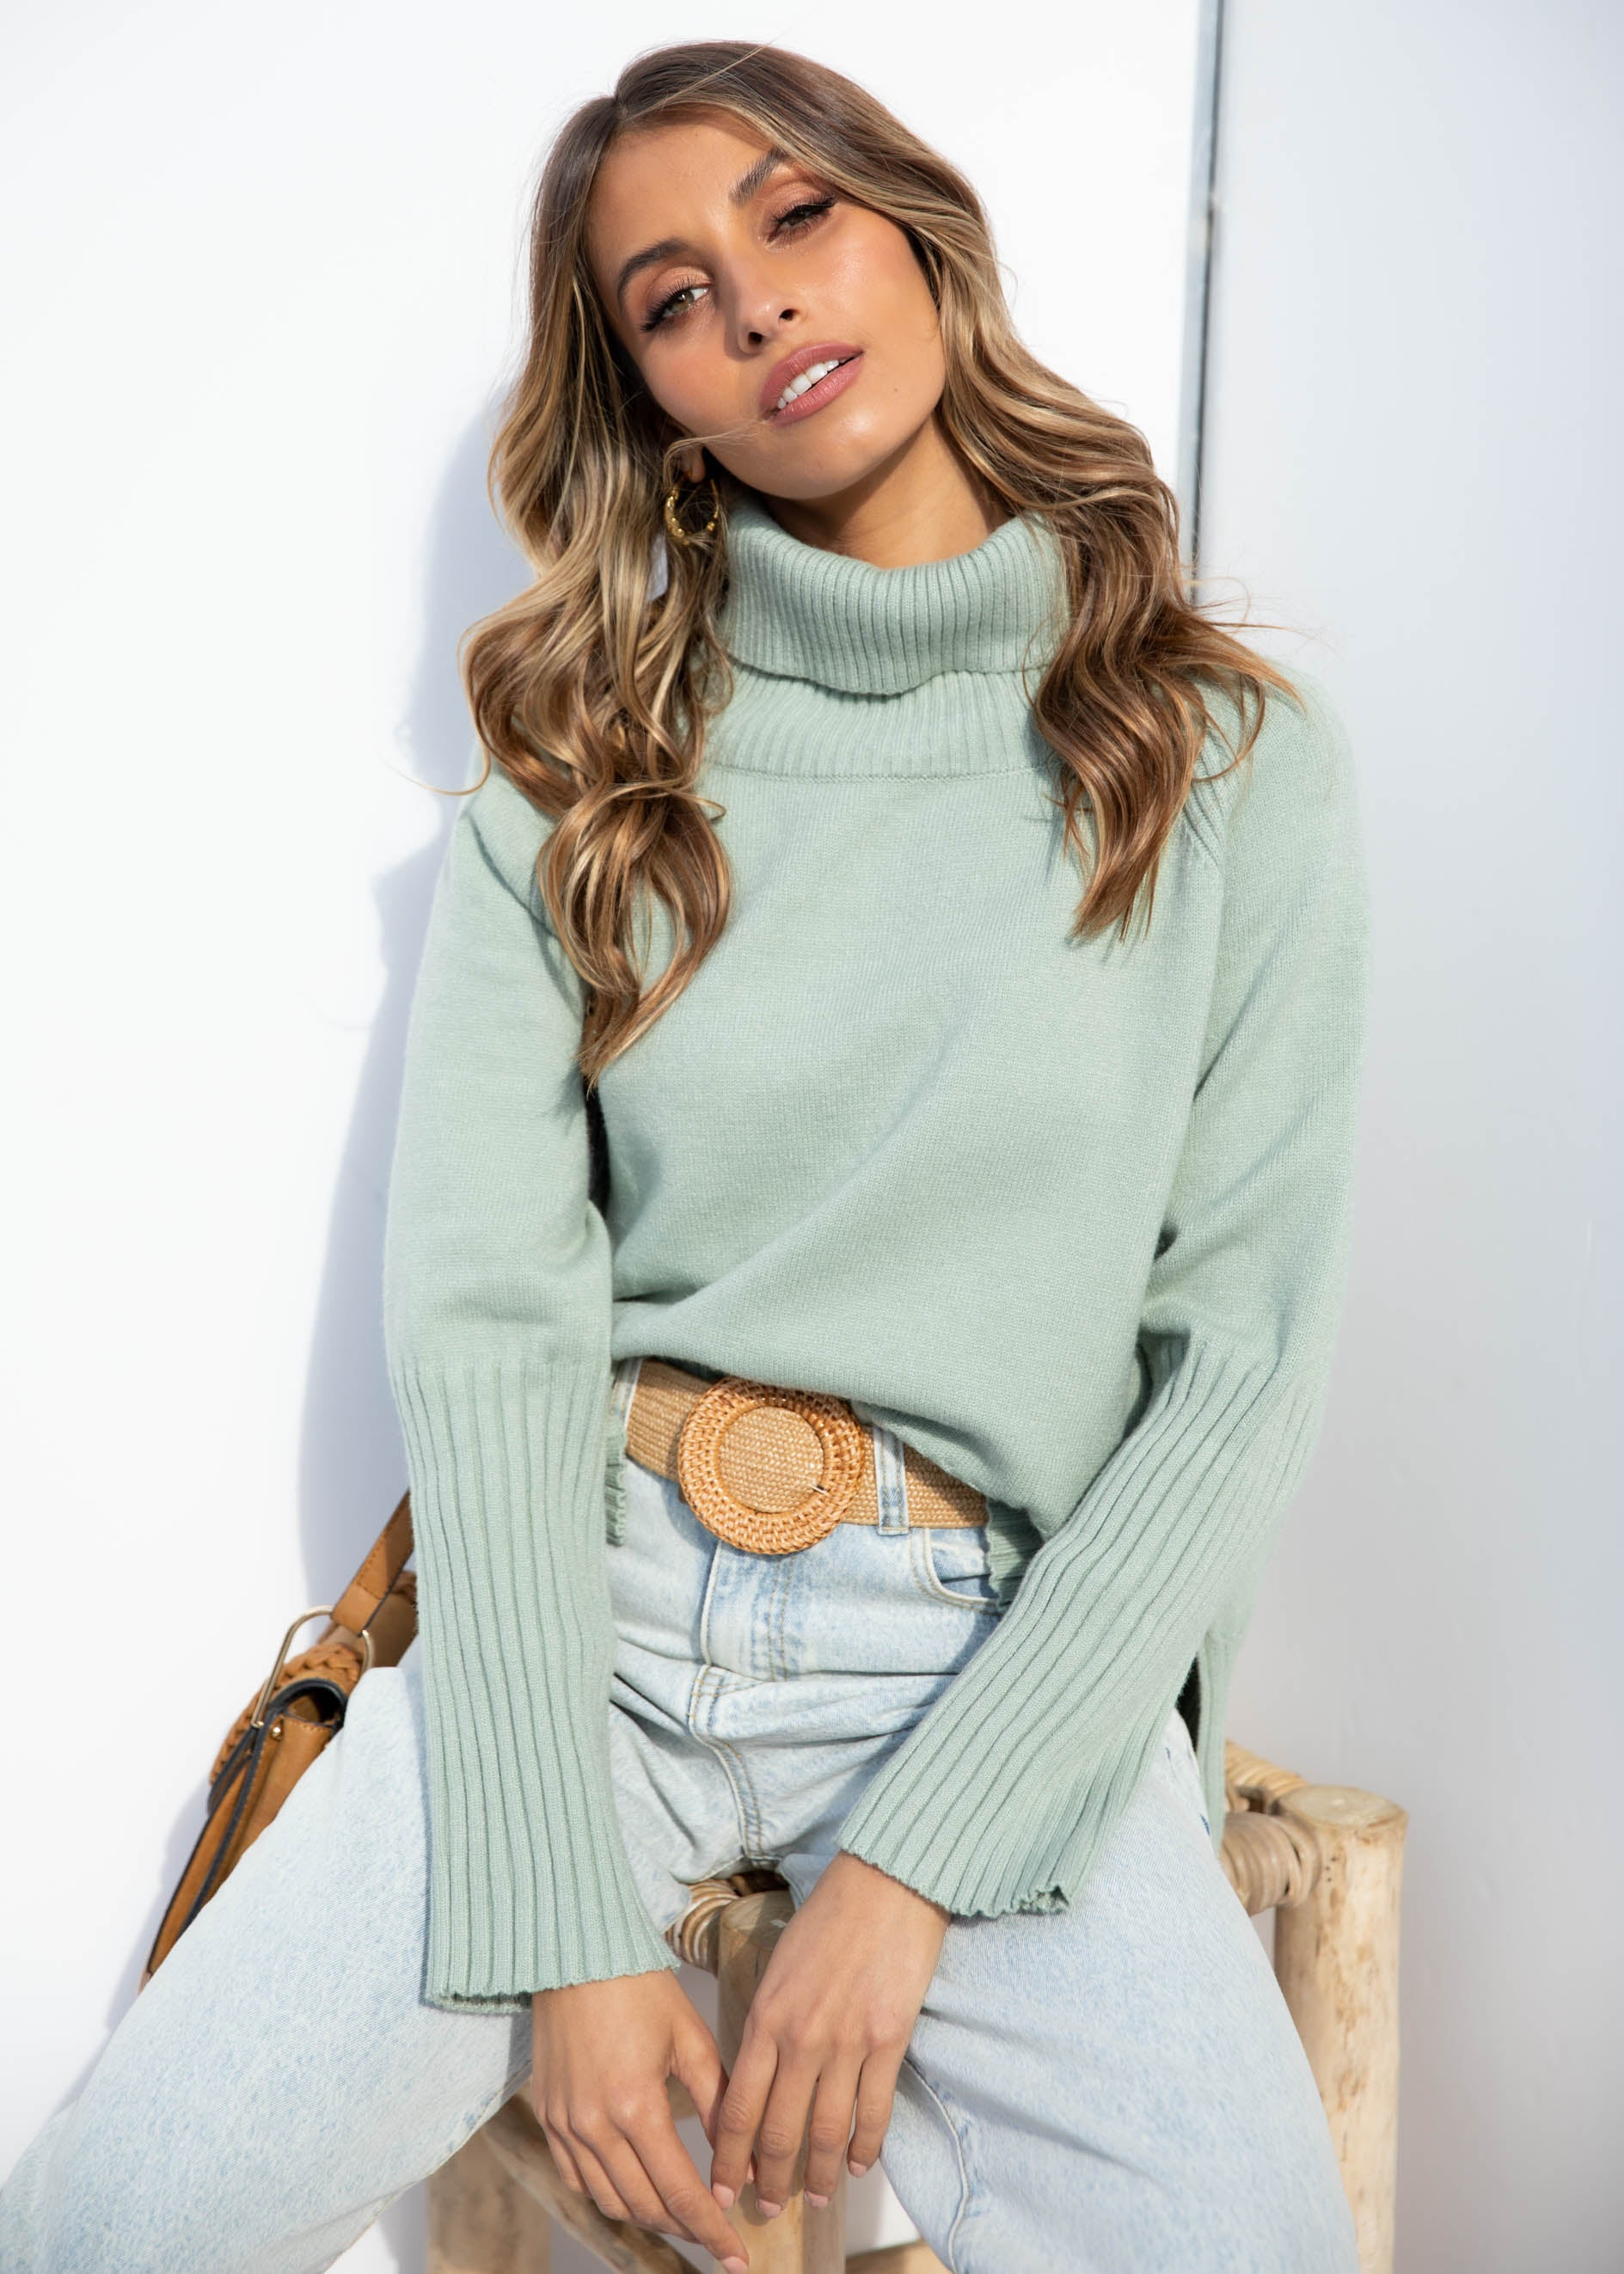 Next Lifetime Sweater - Mint